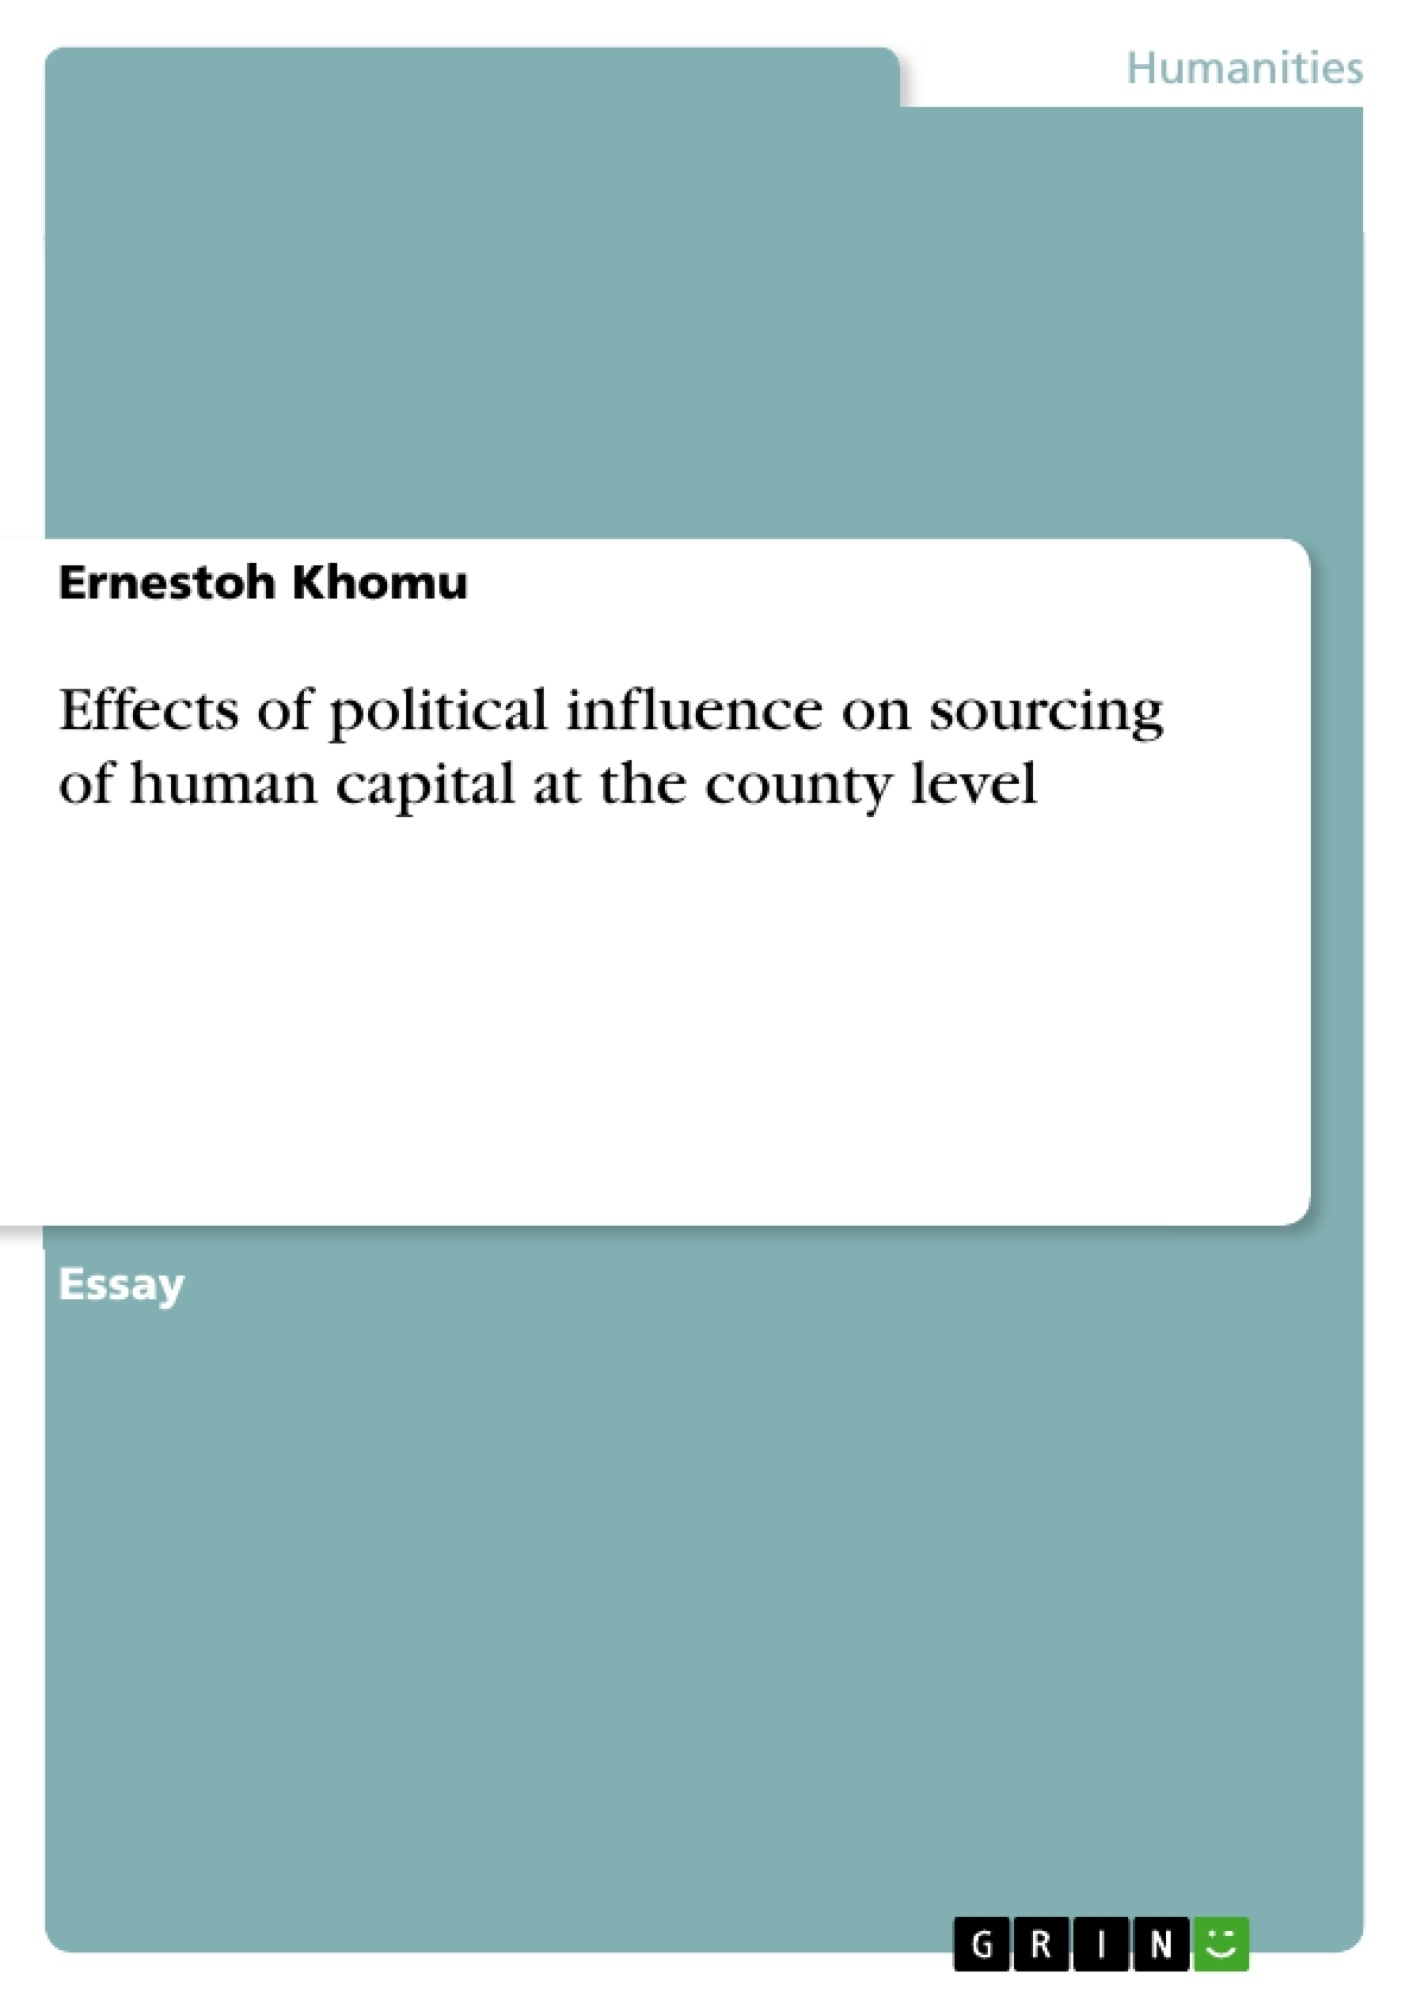 Title: Effects of political influence on sourcing of human capital at the county level